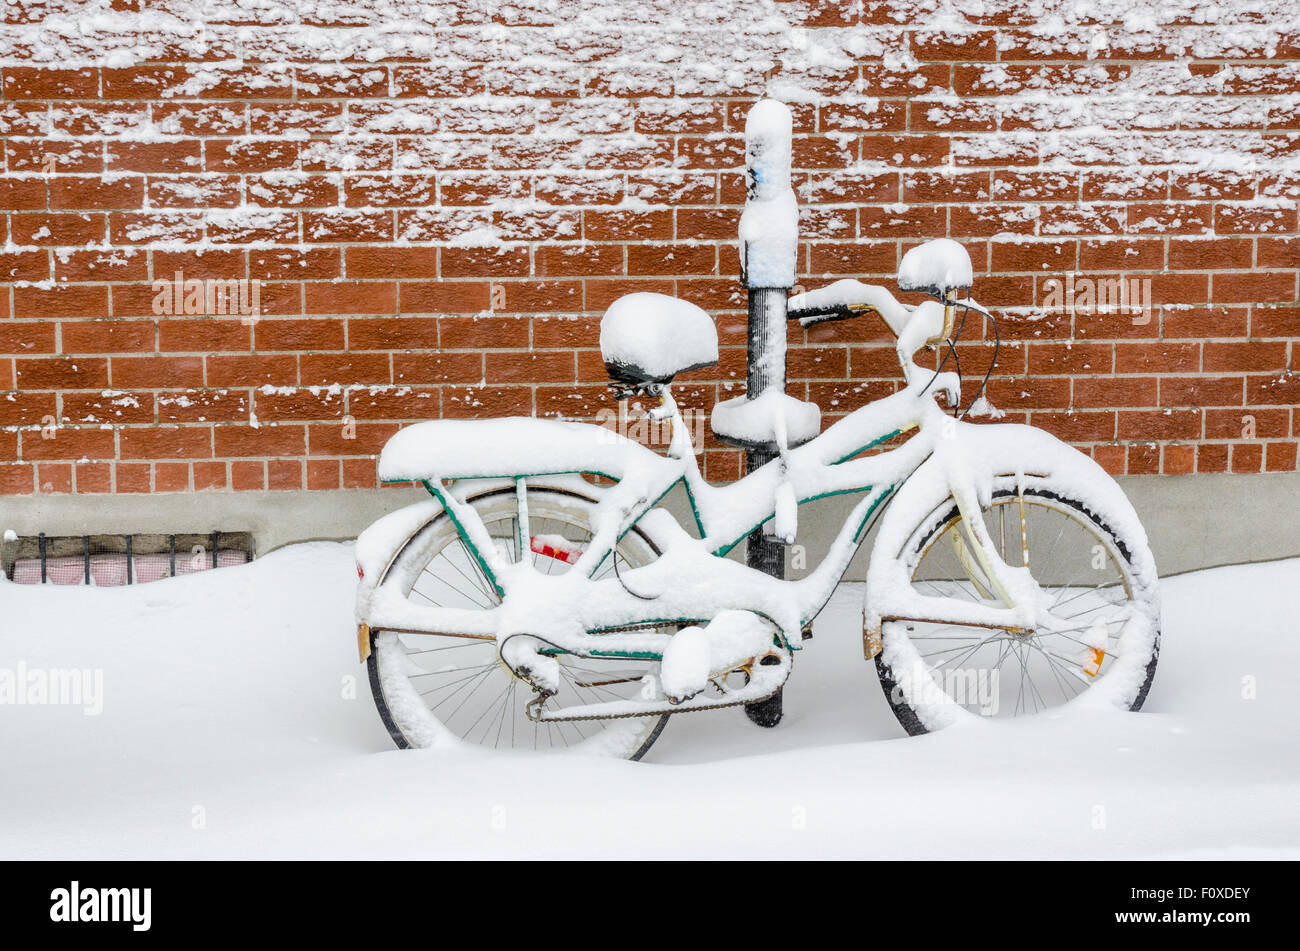 A bicycle leaning against a brick wall and covered in deep fresh snow after a snowstorm in Montreal, Canada - Stock Image